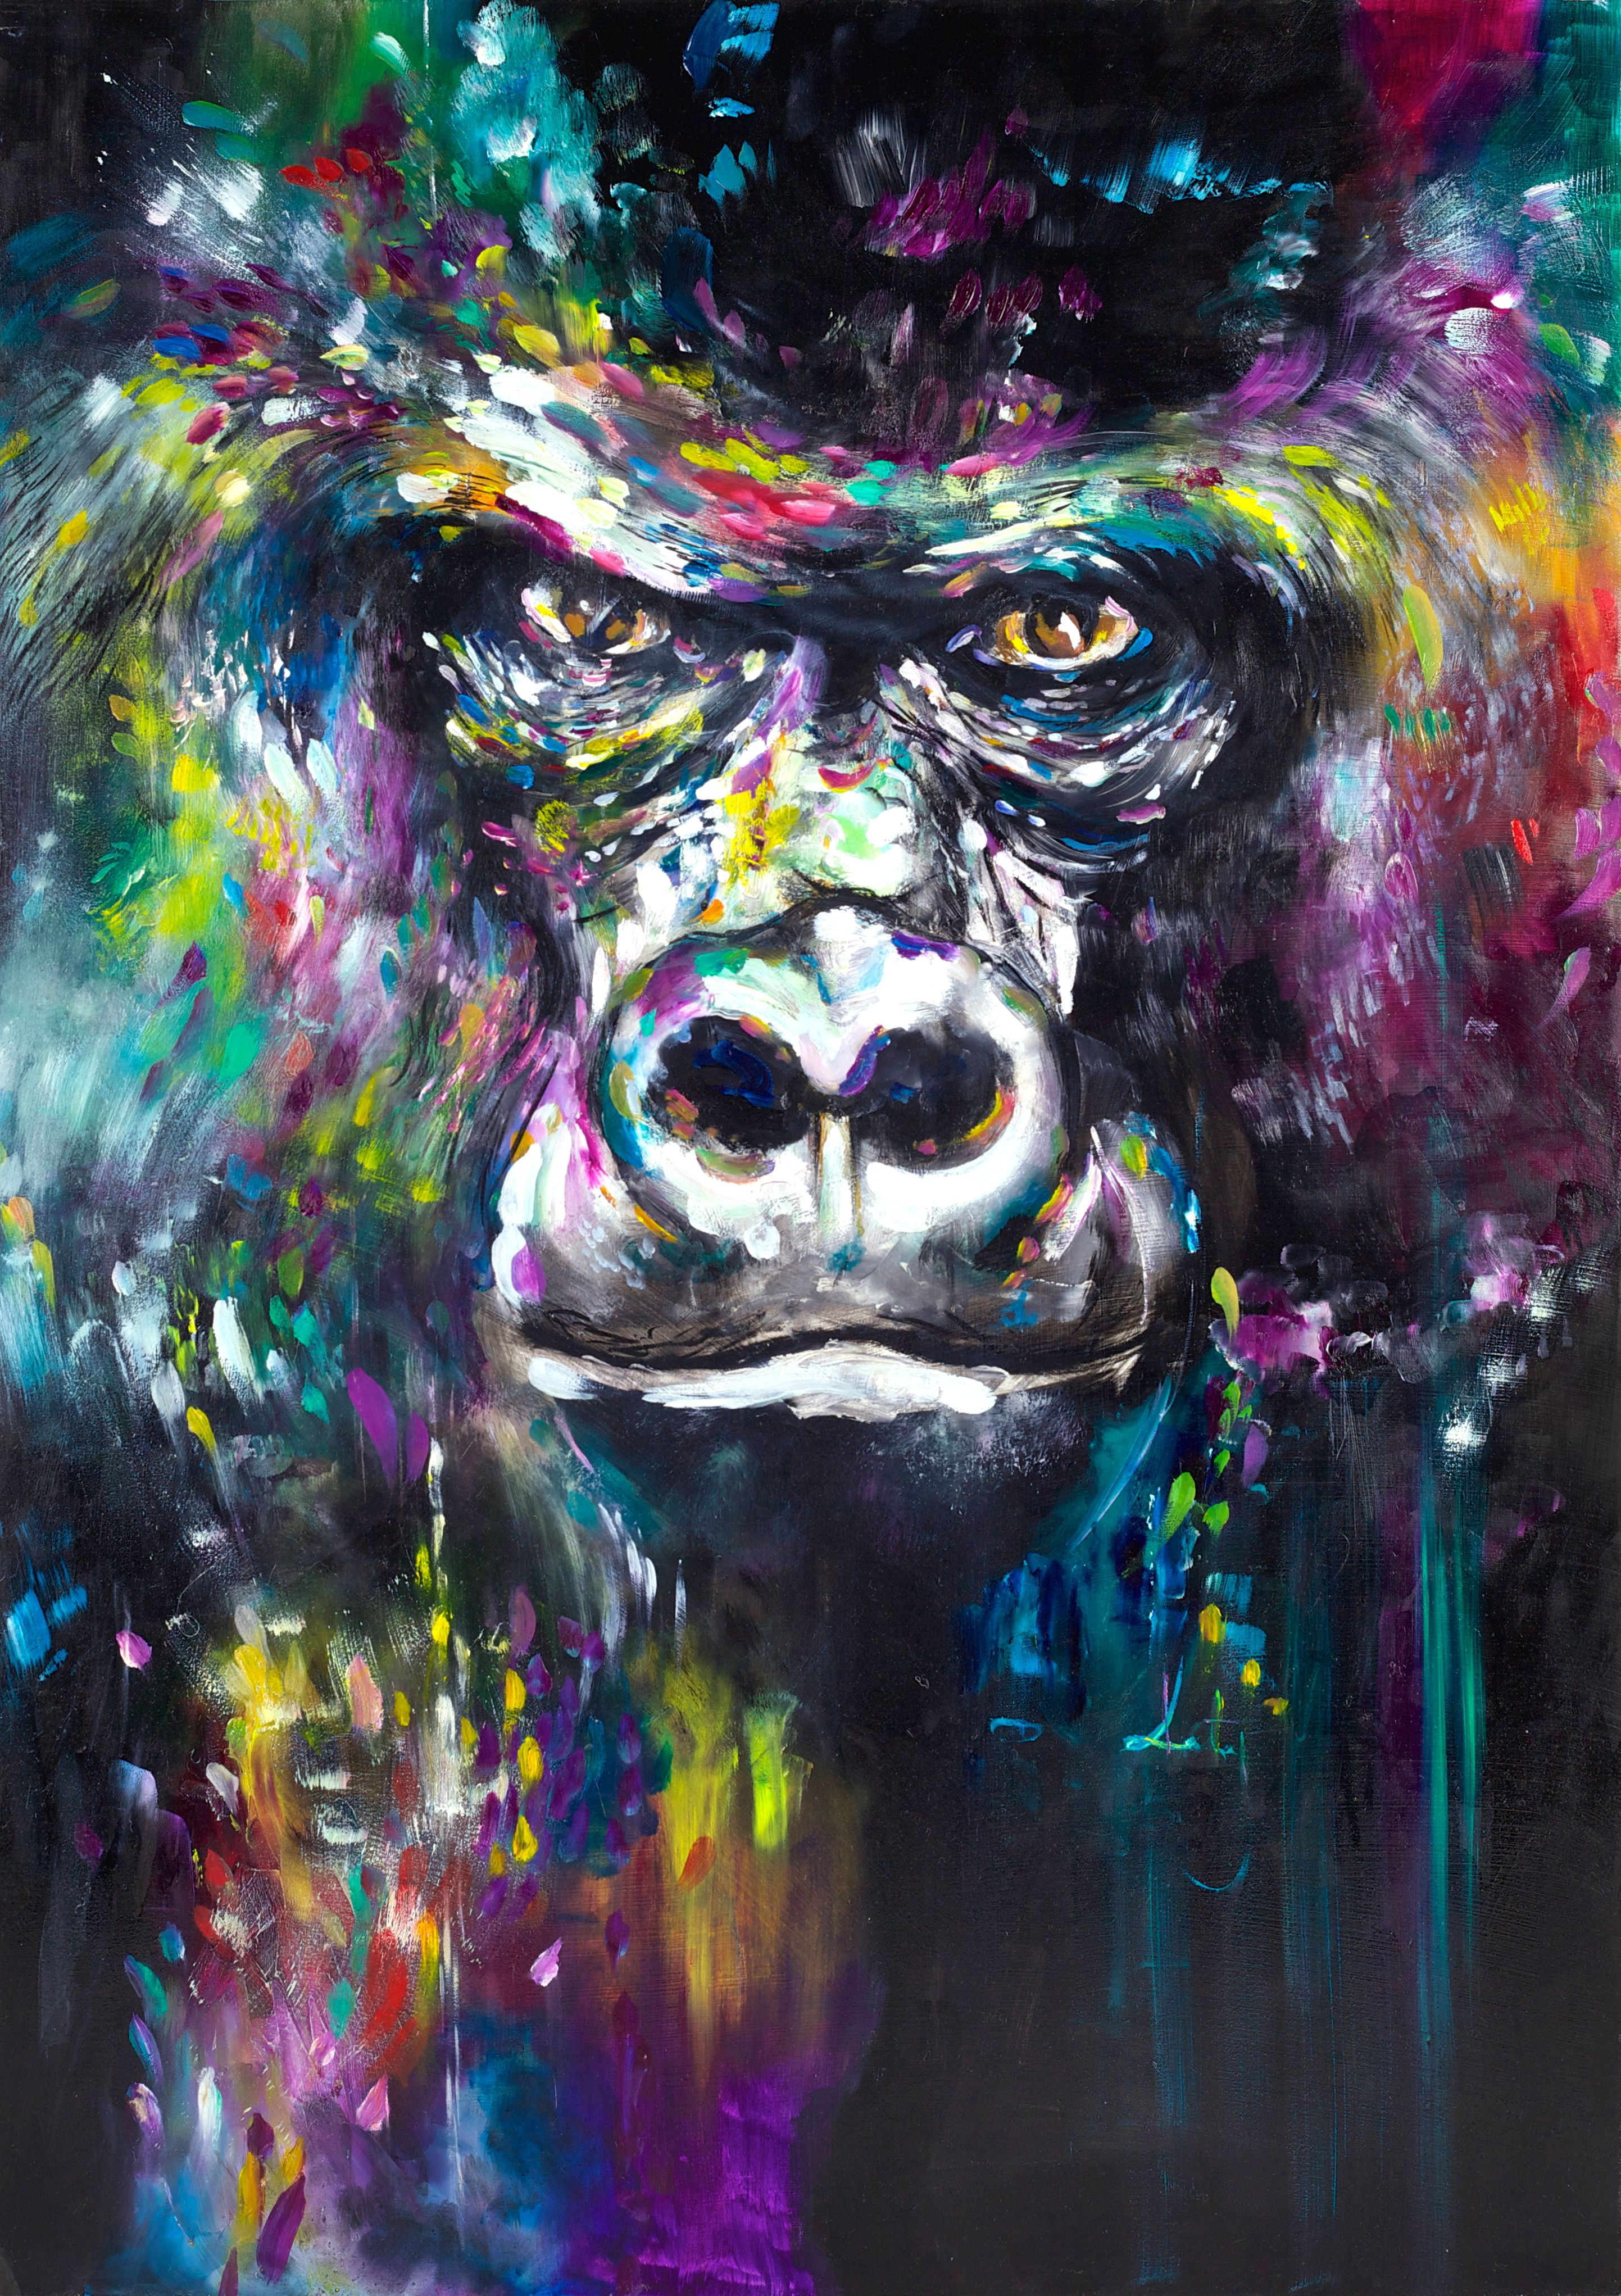 Katy Jade Dobson 'Chimaruka' Oil Painting - The Spectrum Collection